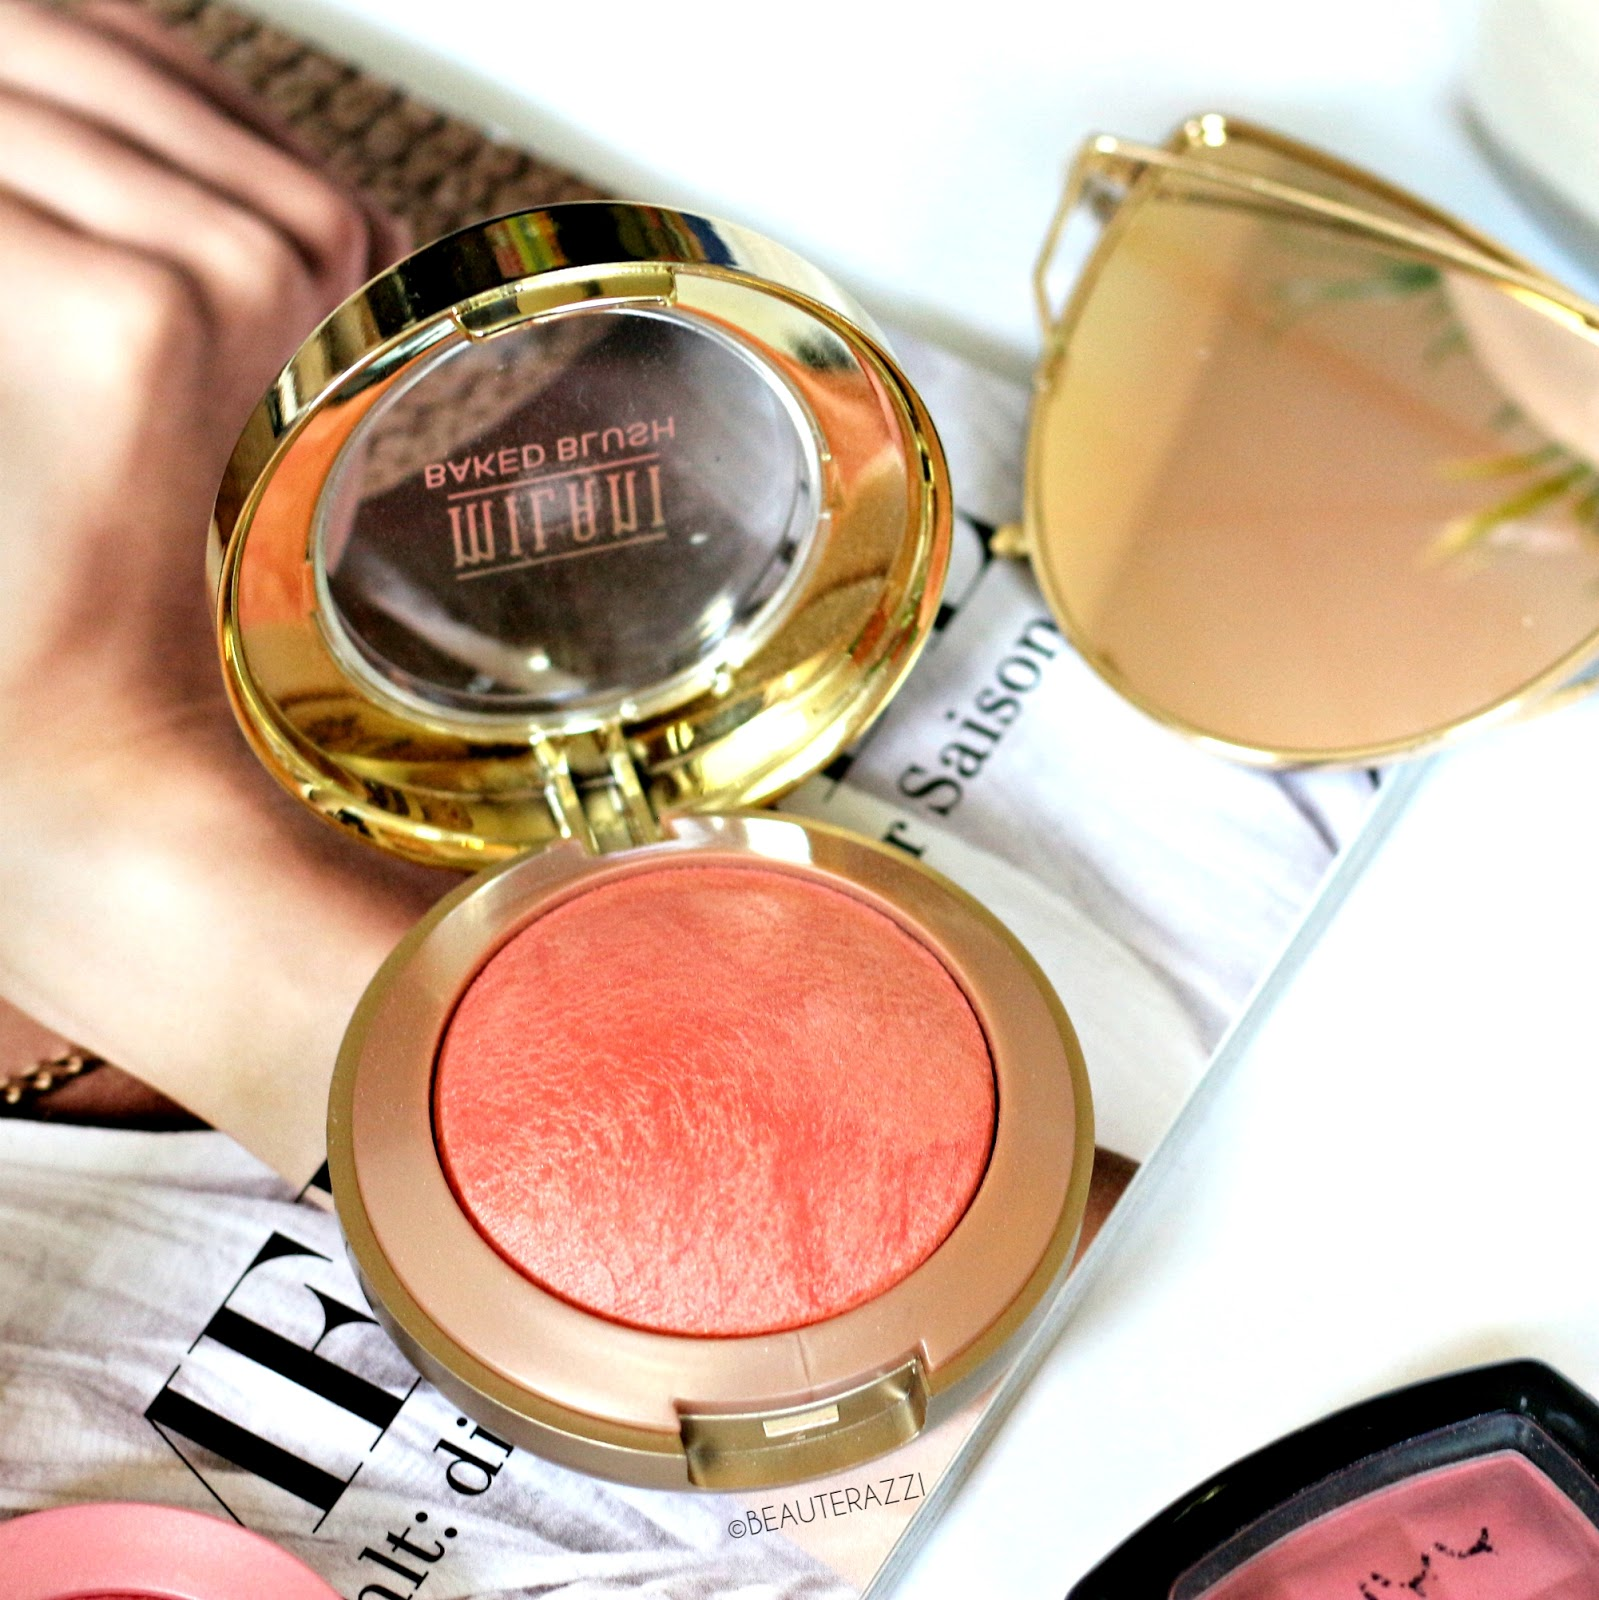 Milani Baked Blush Luminoso